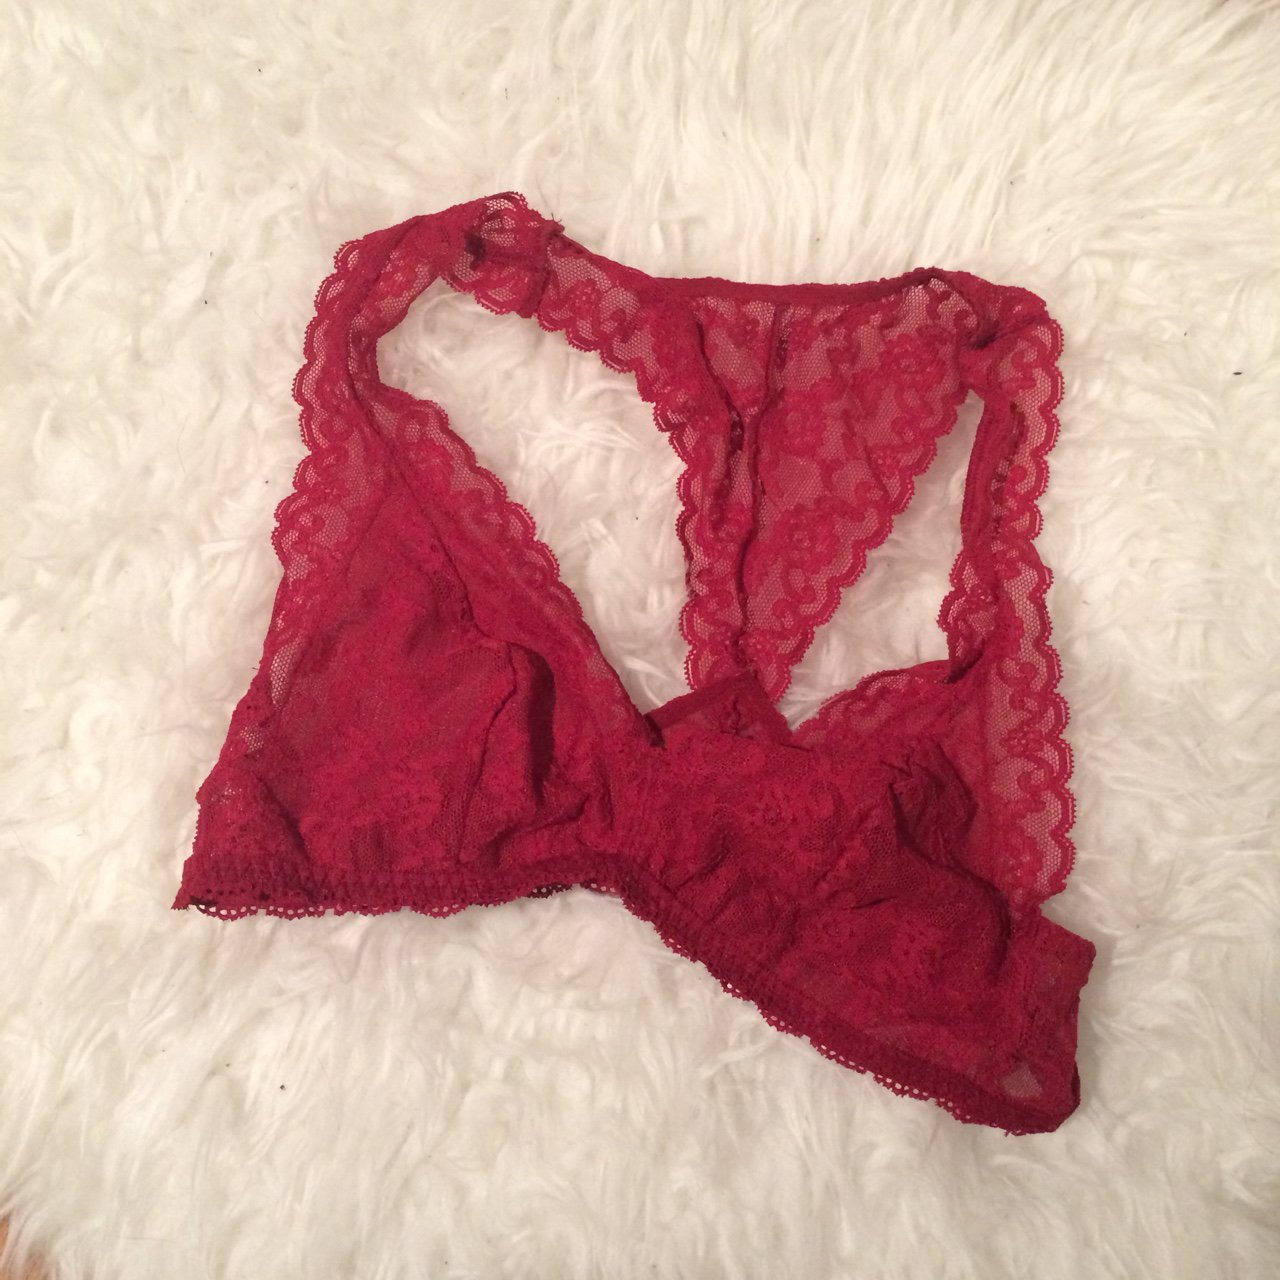 ac013000c38bc 🌹 red lace bralette from victorias secret 🌹these are so i - Depop